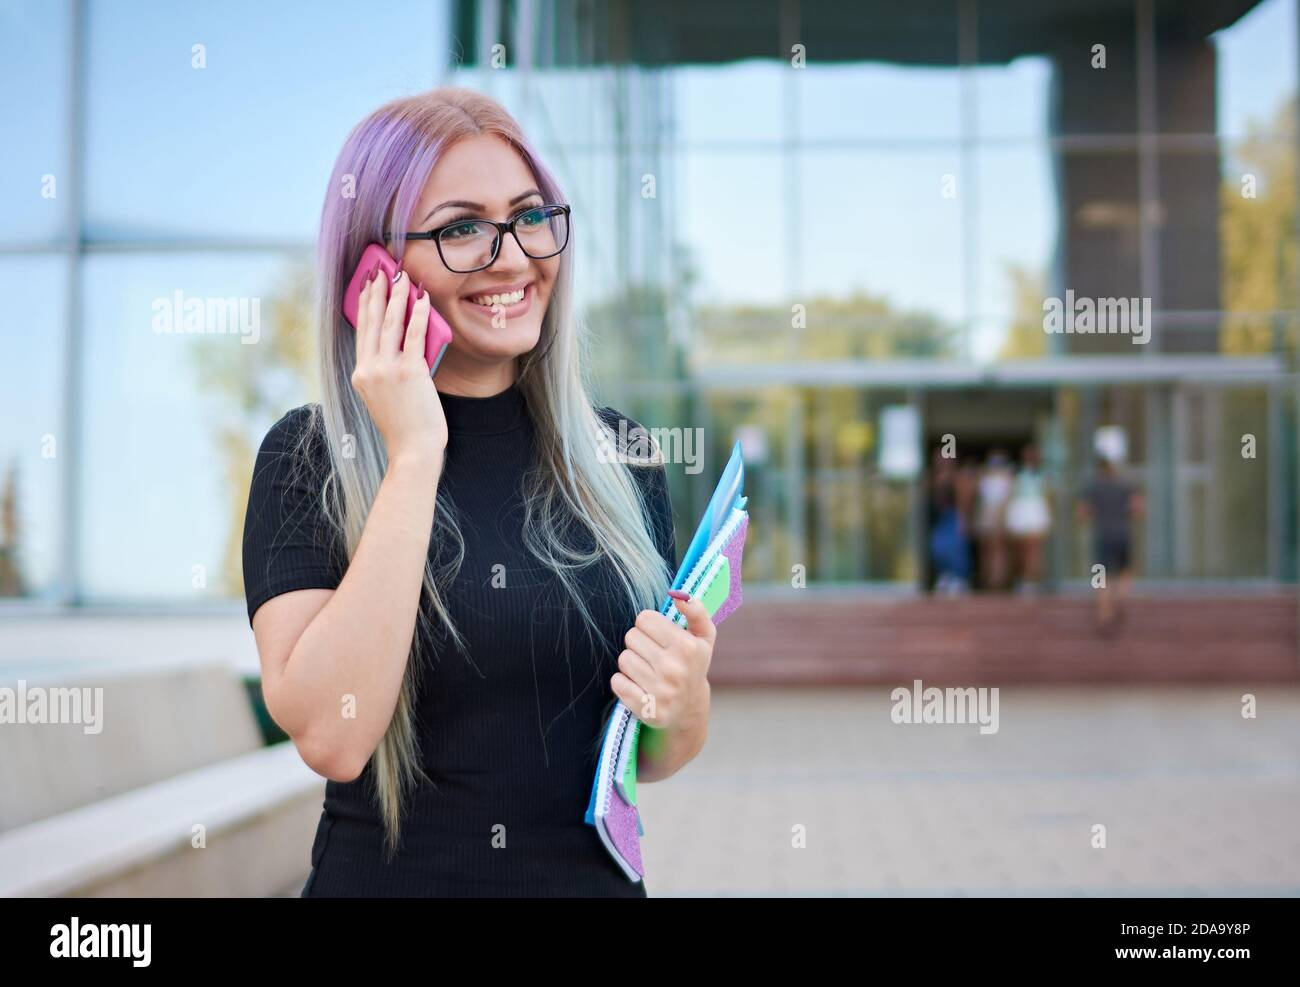 Smiling young student girl from z generation standing in a campus in front of a university building facade and talking on smartphone Stock Photo